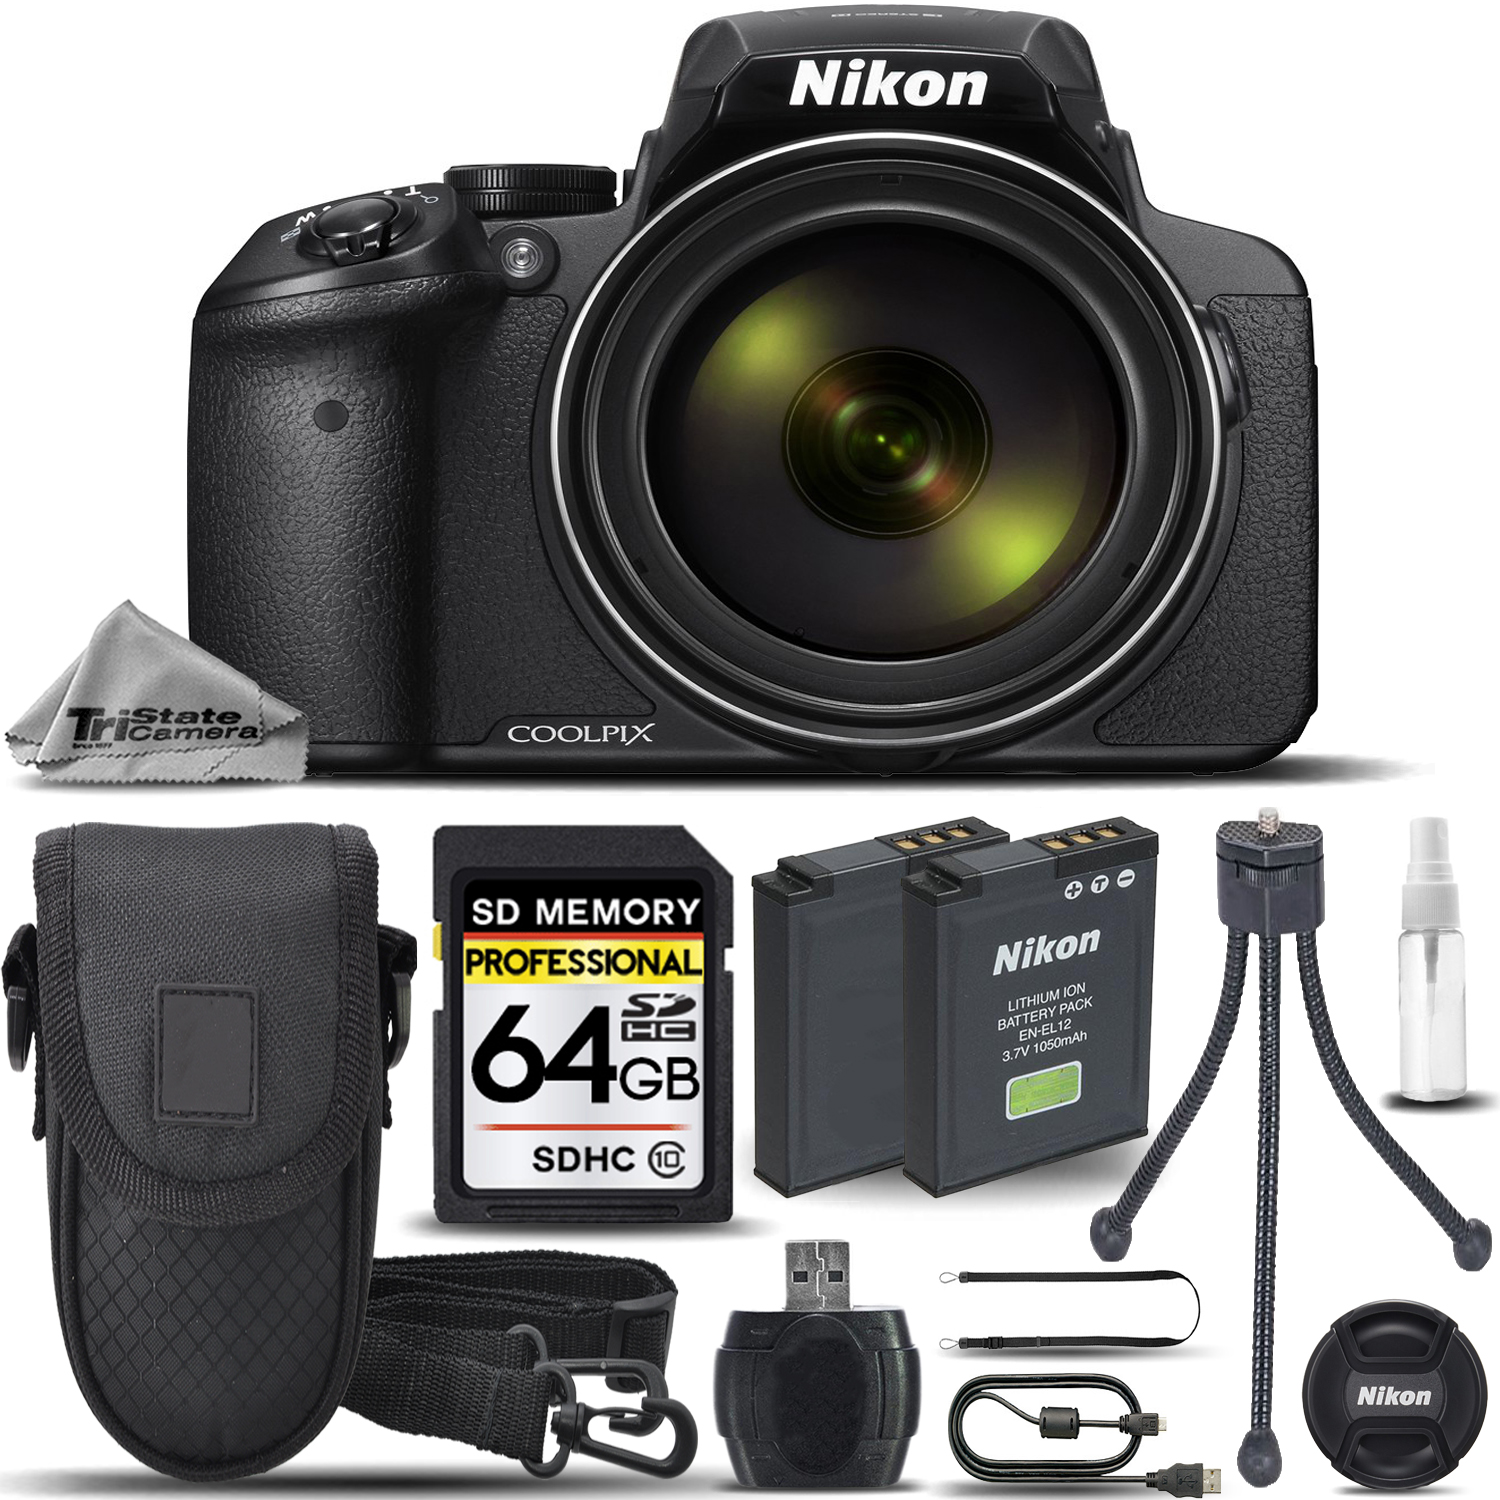 Nikon COOLPIX P900 Digital Camera 83x Optical Zoom WiFi +Case +Tripod- 64GB Kit by Nikon